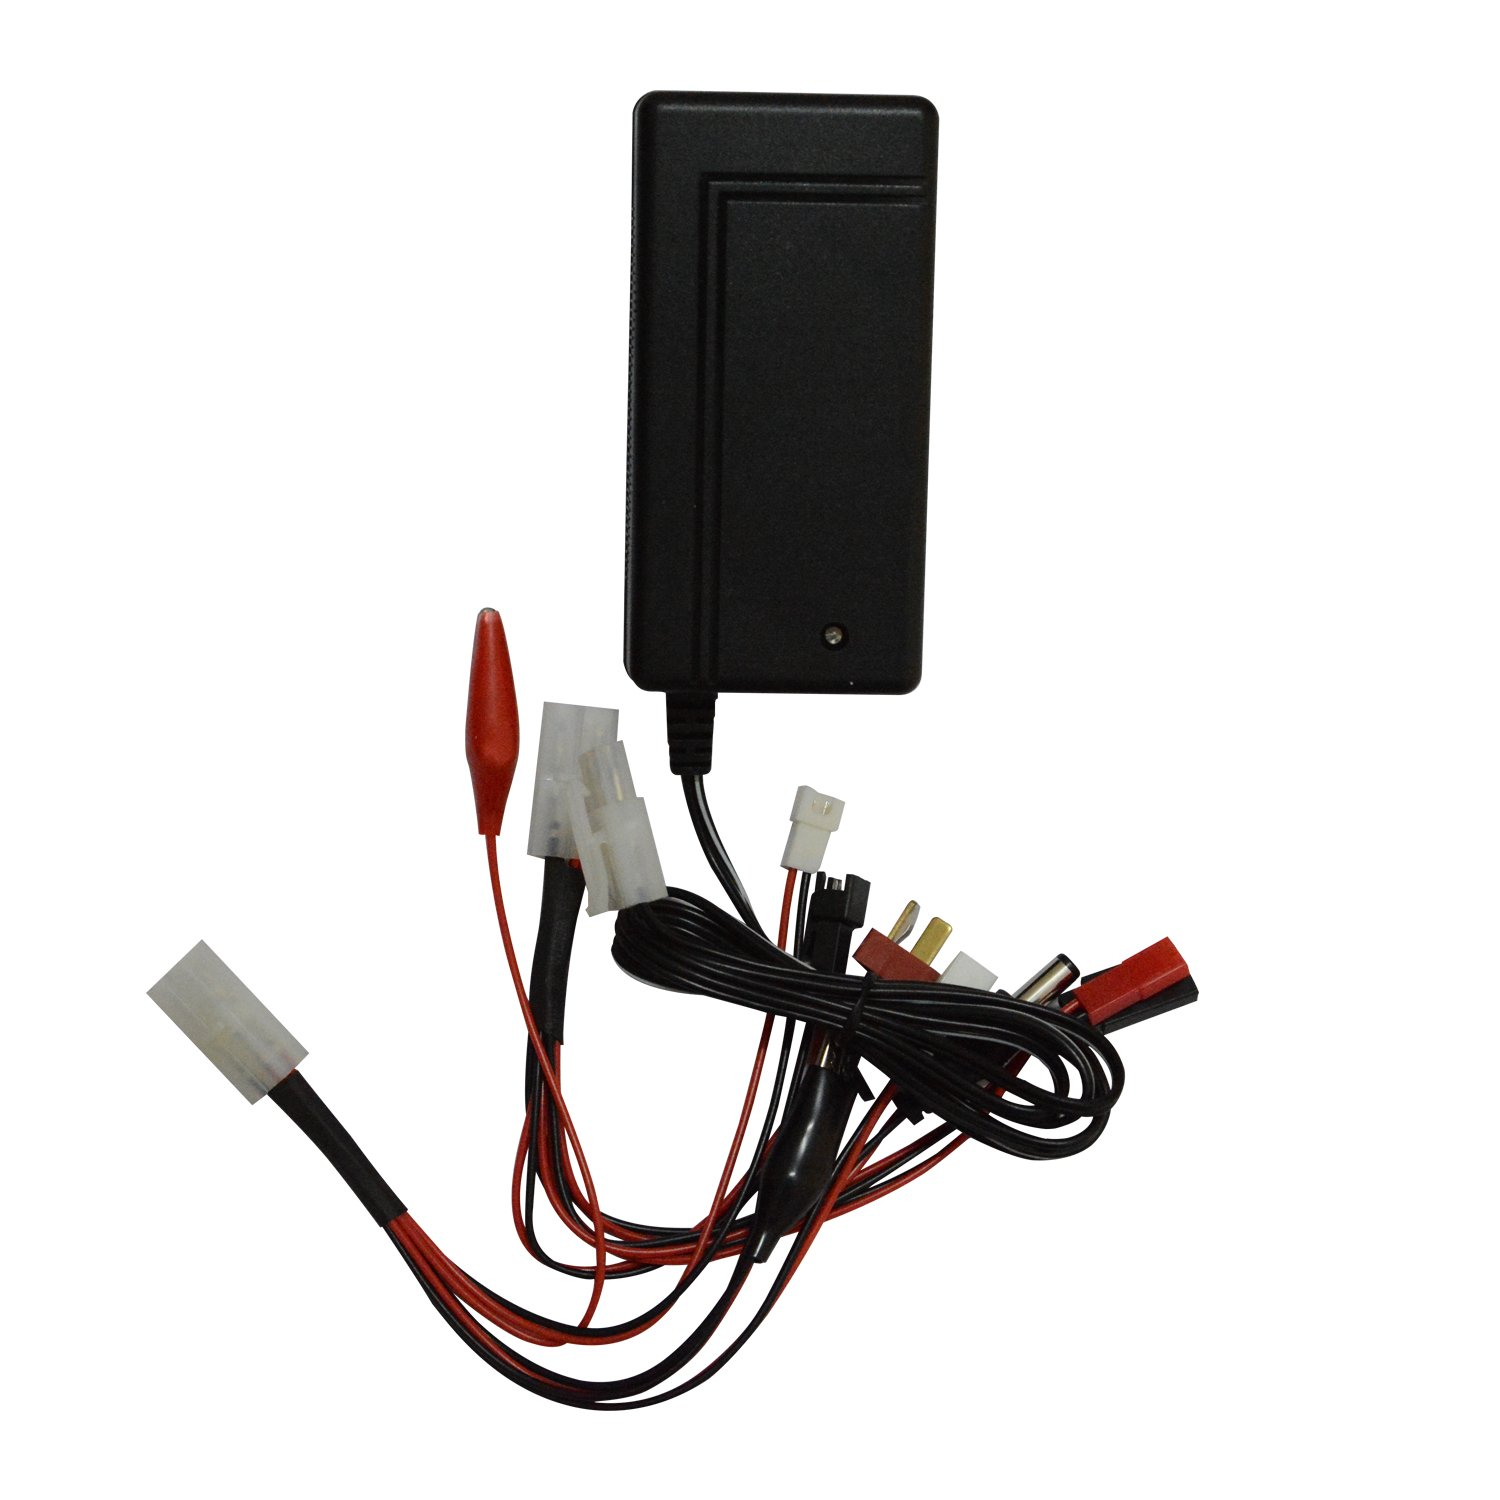 szwisechip 800 mA Nimh, Nicd Batteries, 3~8 cells (3.6V, 4.8V, 6V, 7.2V, 8.4V, 9.6v) Pack fast Charger for Toy RC (Radio-controlled) Model Cars, Hobby, Boats and Aircraft, Leads in pack